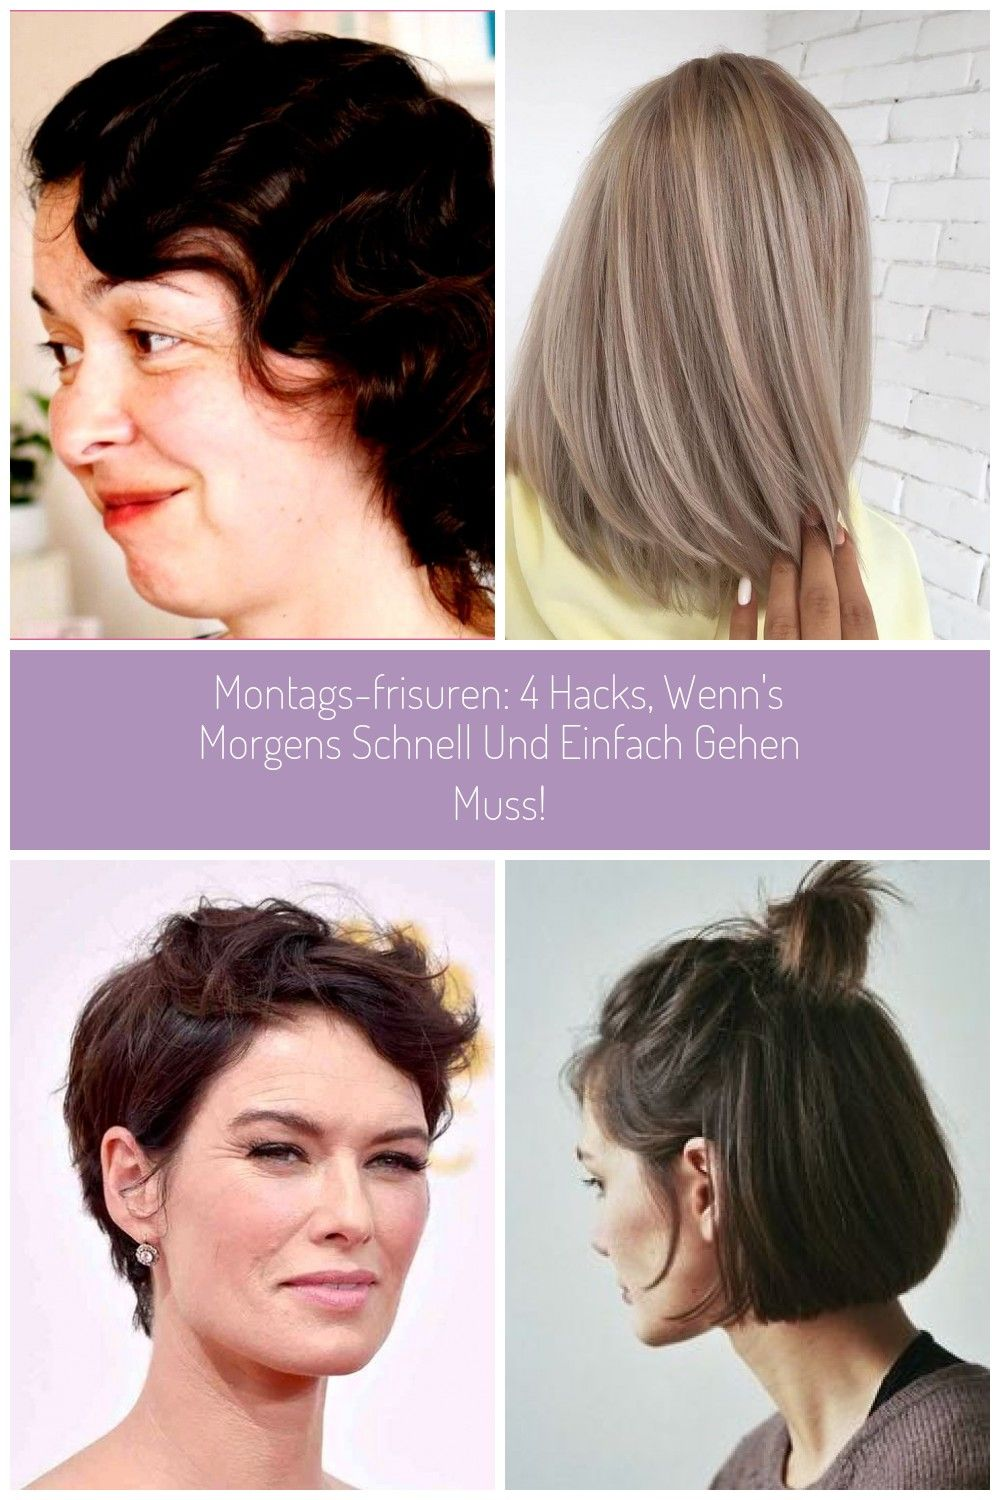 Frisuren Fur Altere Damen Mit Brille Frisuren Fur Altere Damen Mit Brille Frisuren Fur Altere Damen Mit Brille Frisuren Fur Frauen Halblang Halblang In 2020 Winston